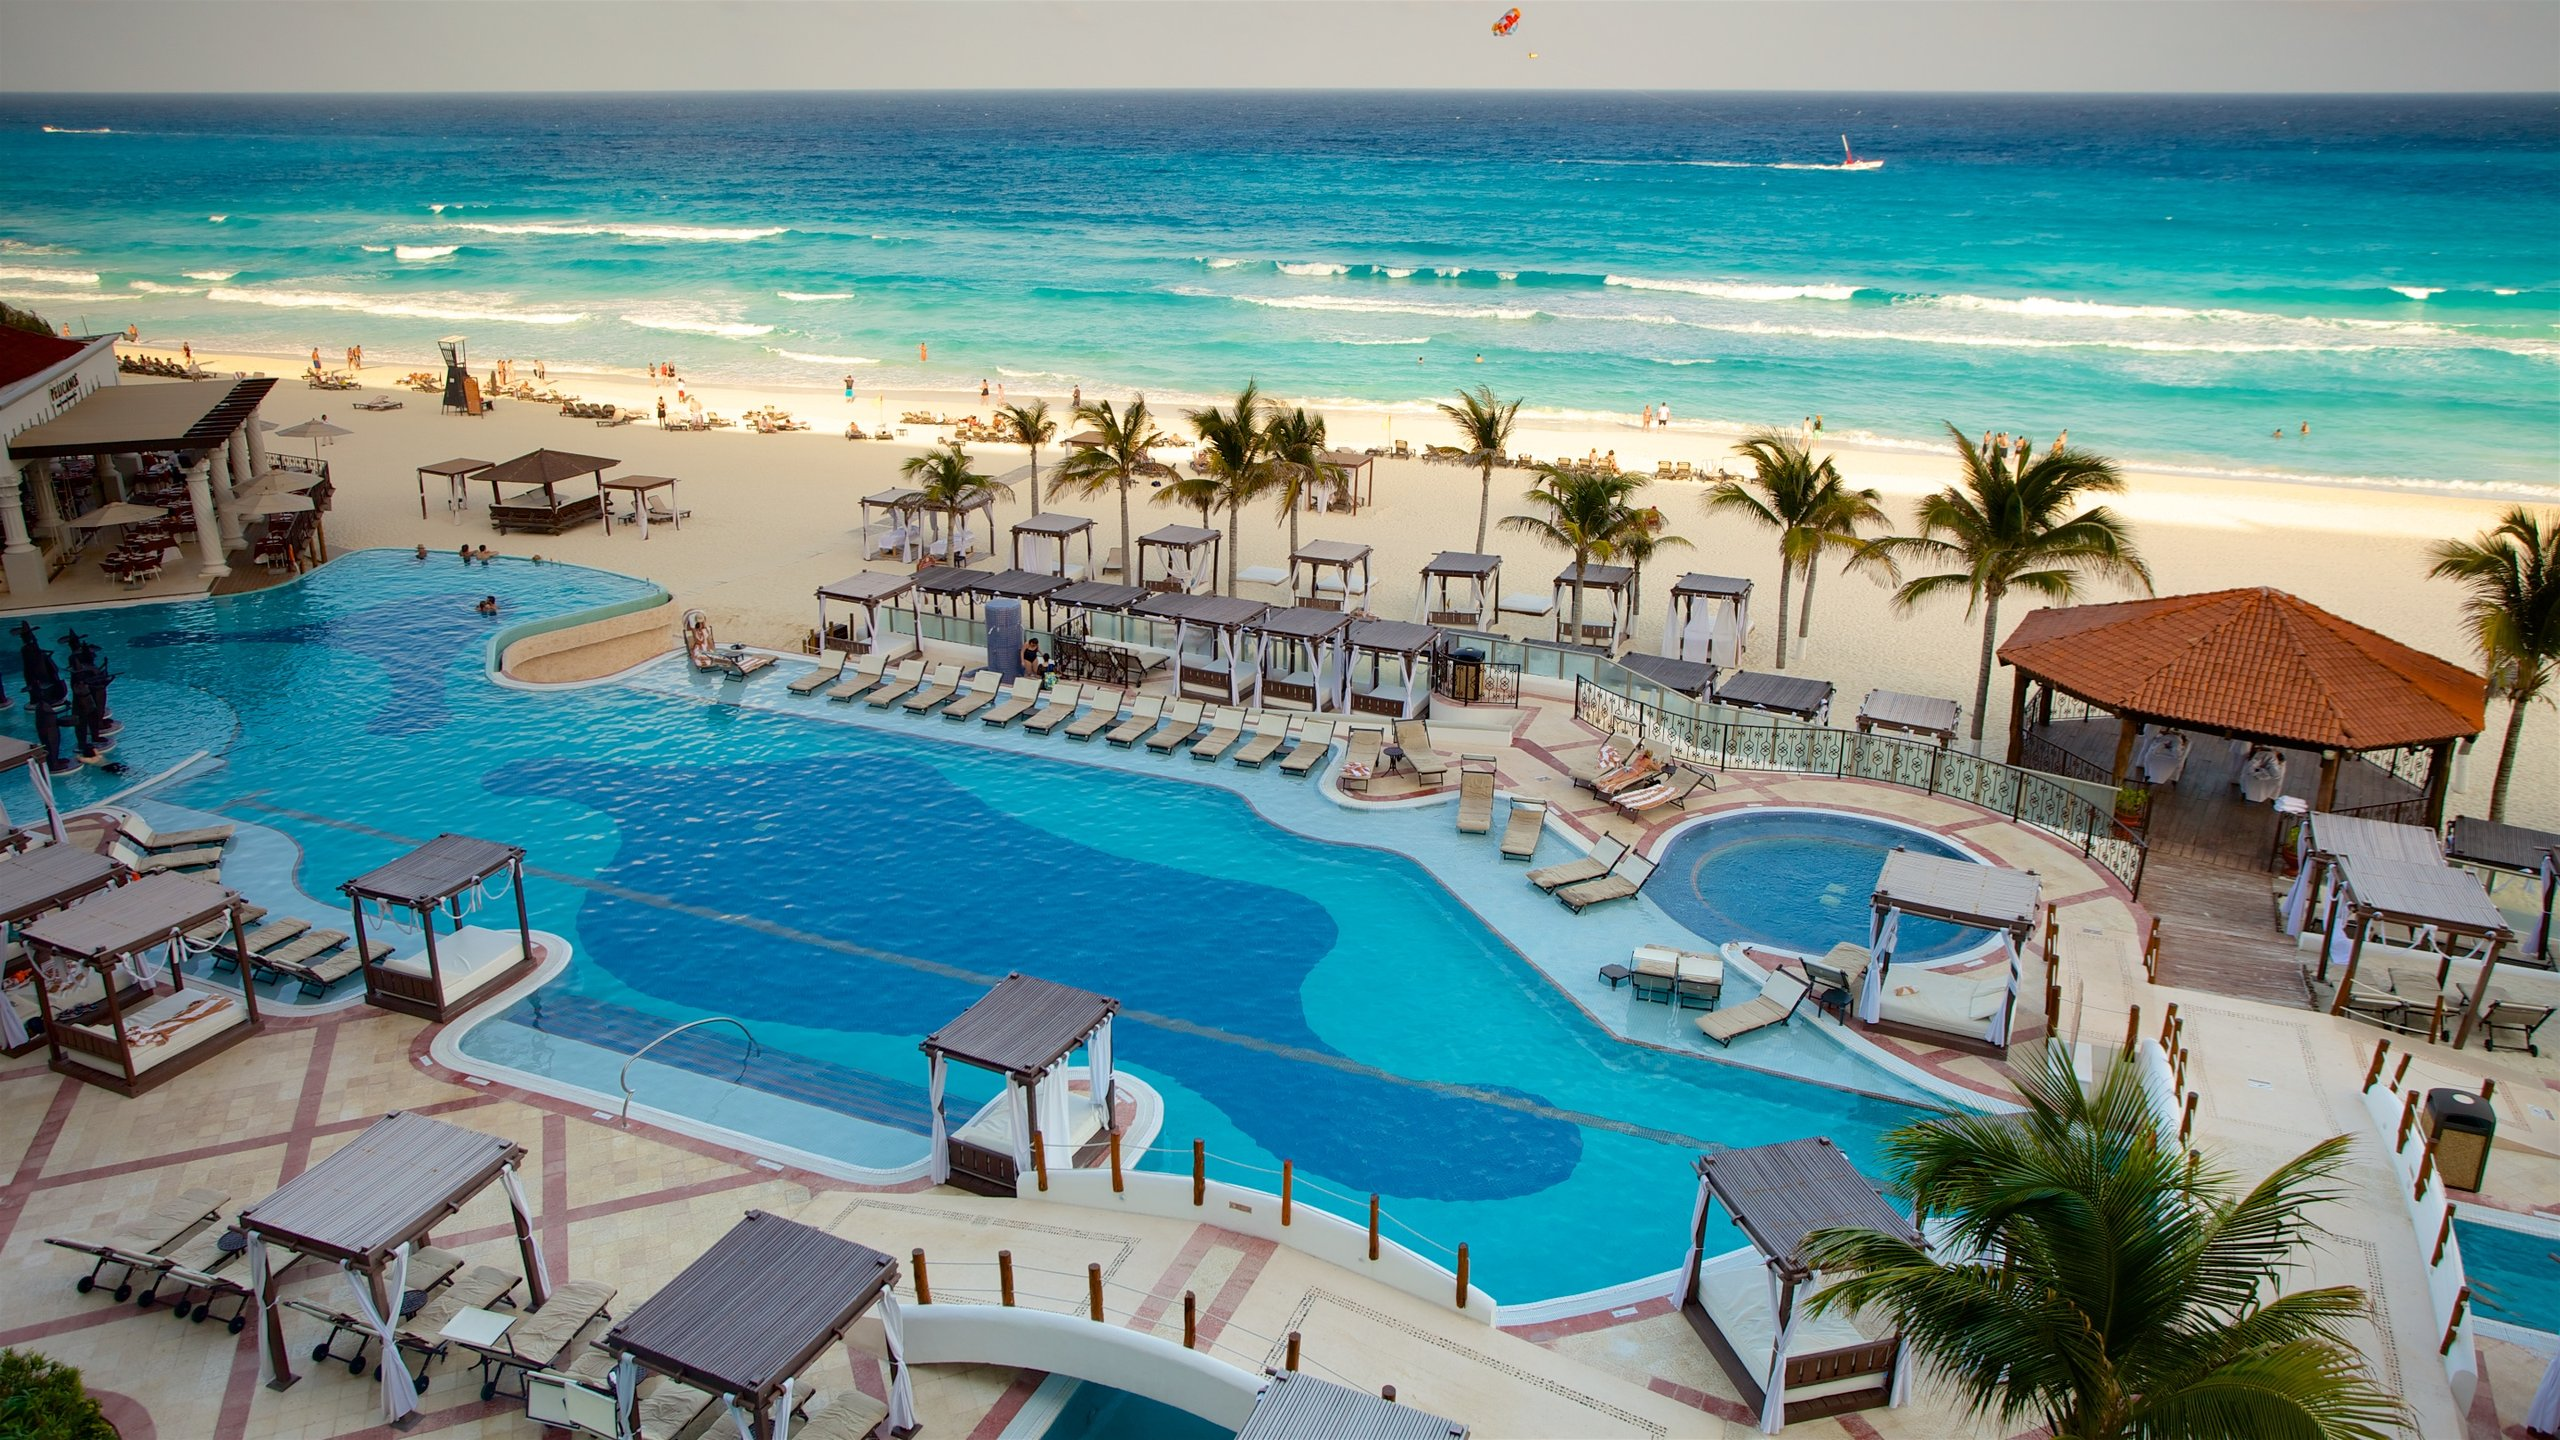 Top 10 Hotels With Pools In Cancun $193: Splash Into Savings